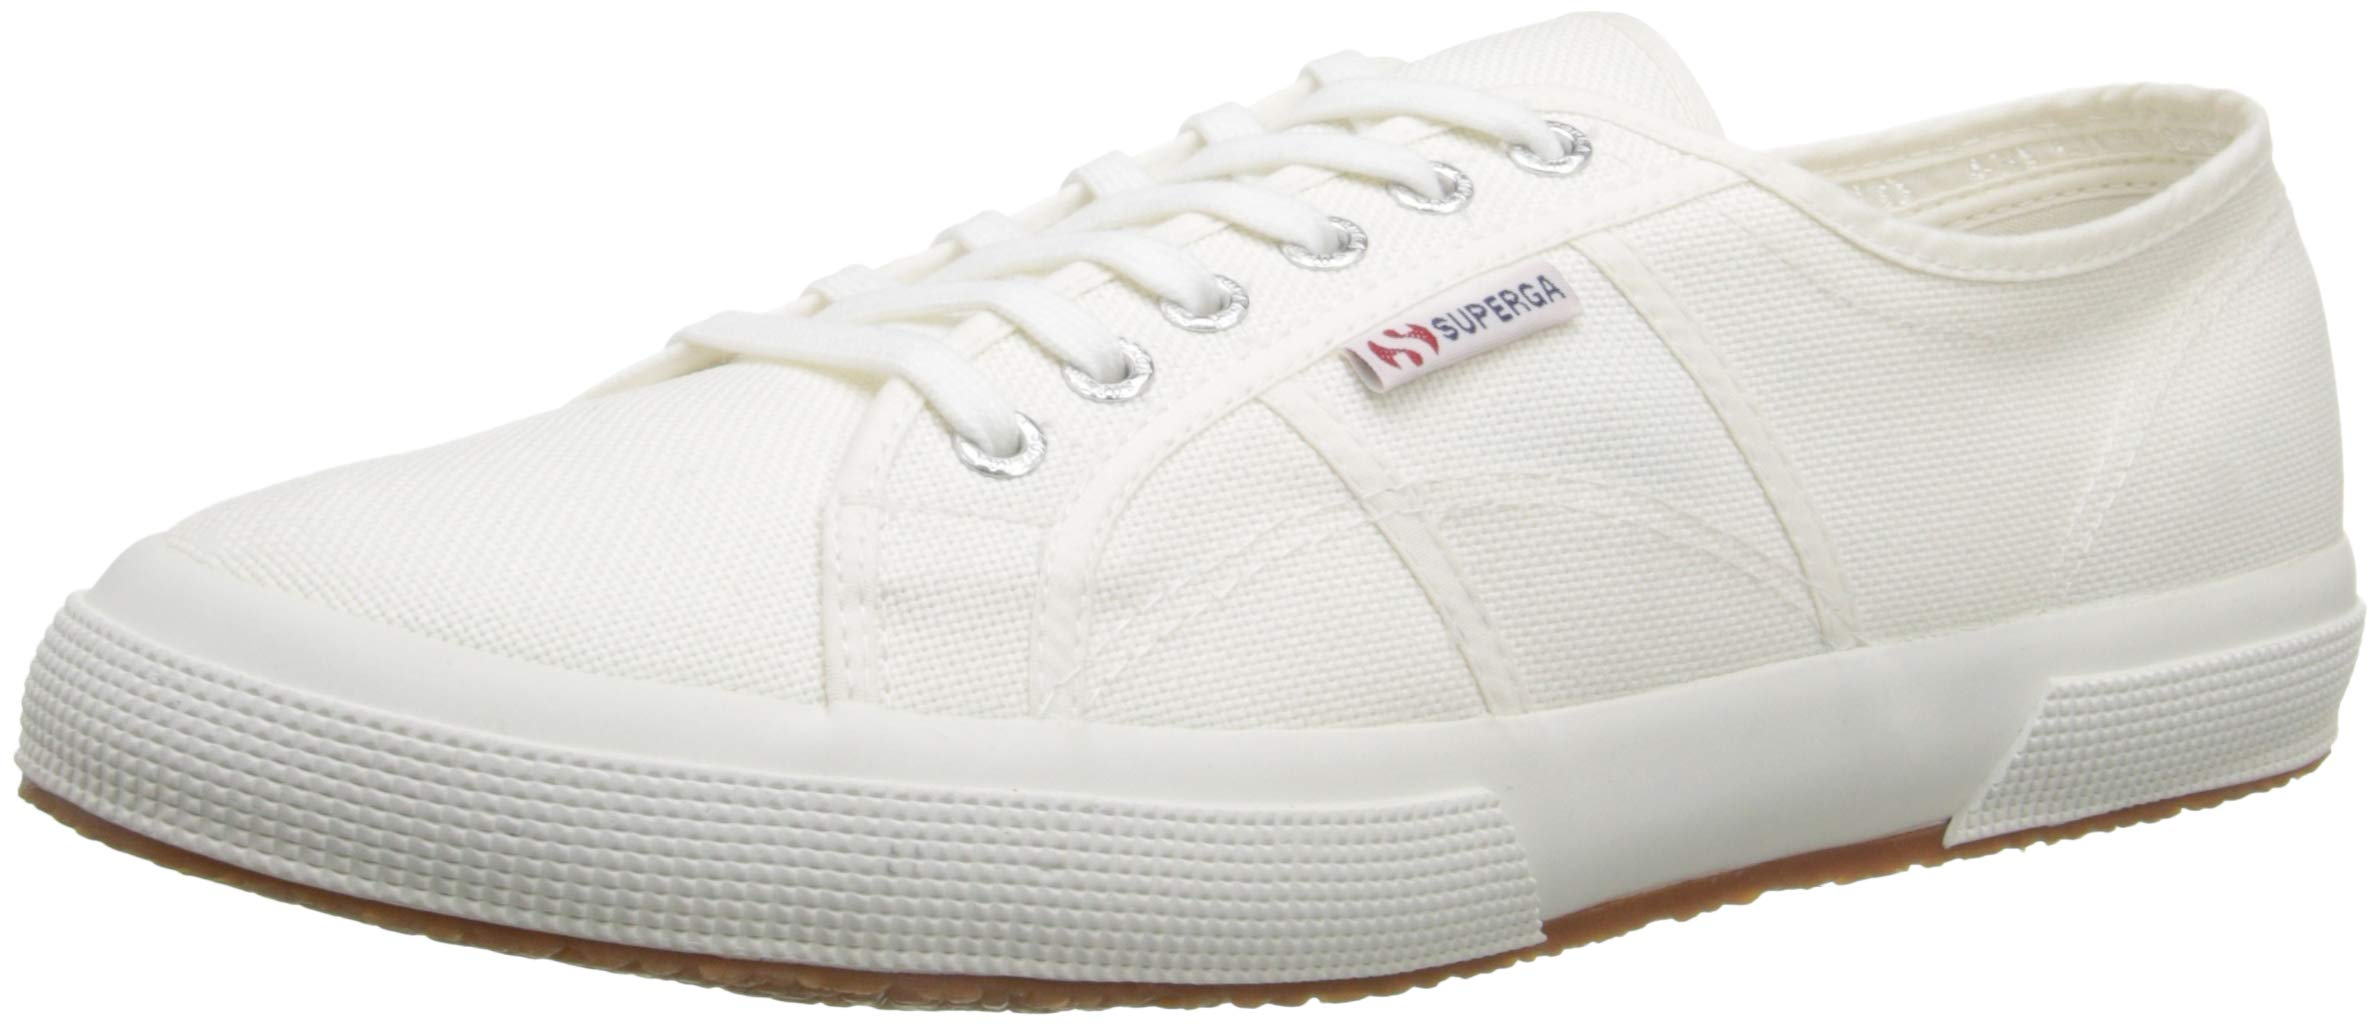 Superga 2750 Cotu Classic, Unisex Adults' Low-Top Sneakers, White, 7.5 UK (41.5 EU)